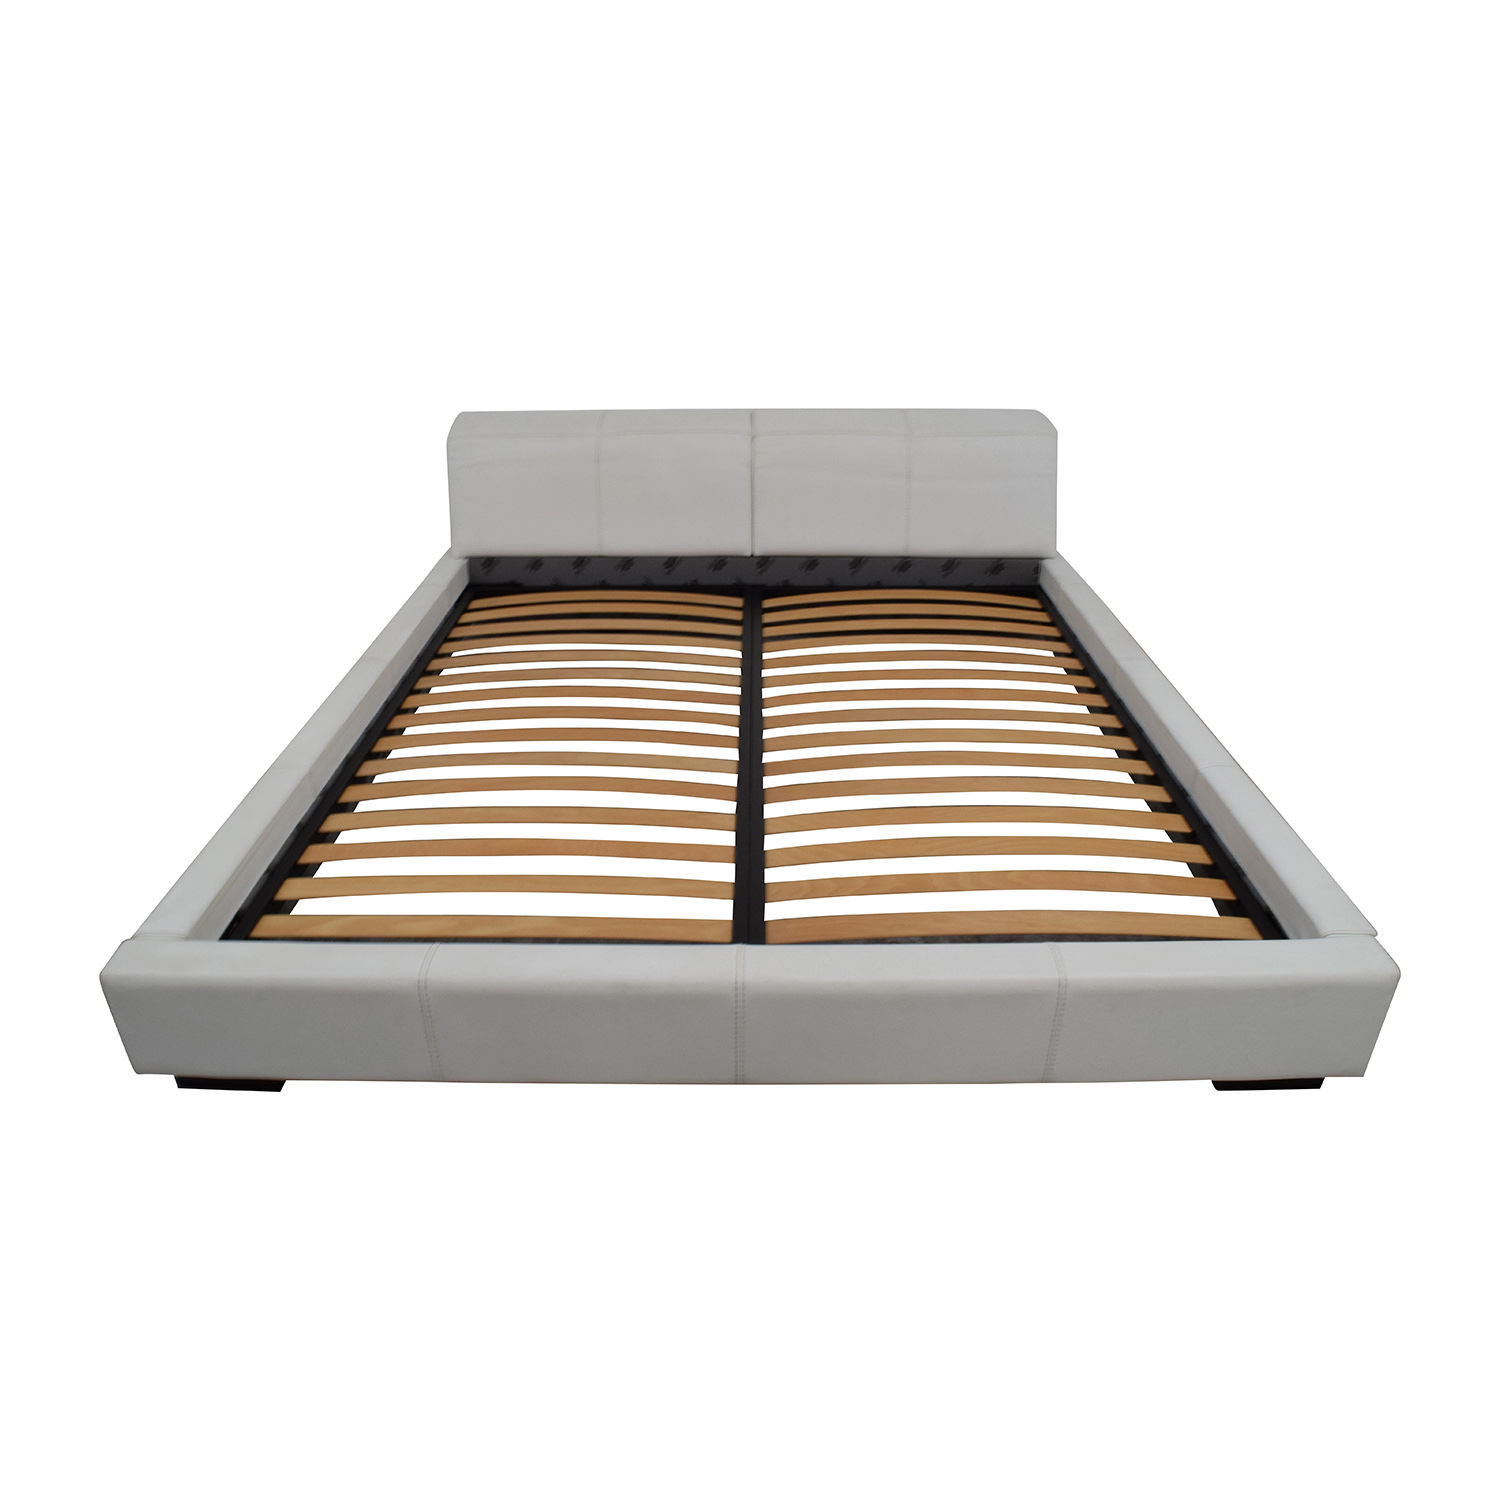 Paramount Paramount Gamma Arredamenti Leather Platform King Bed Beds